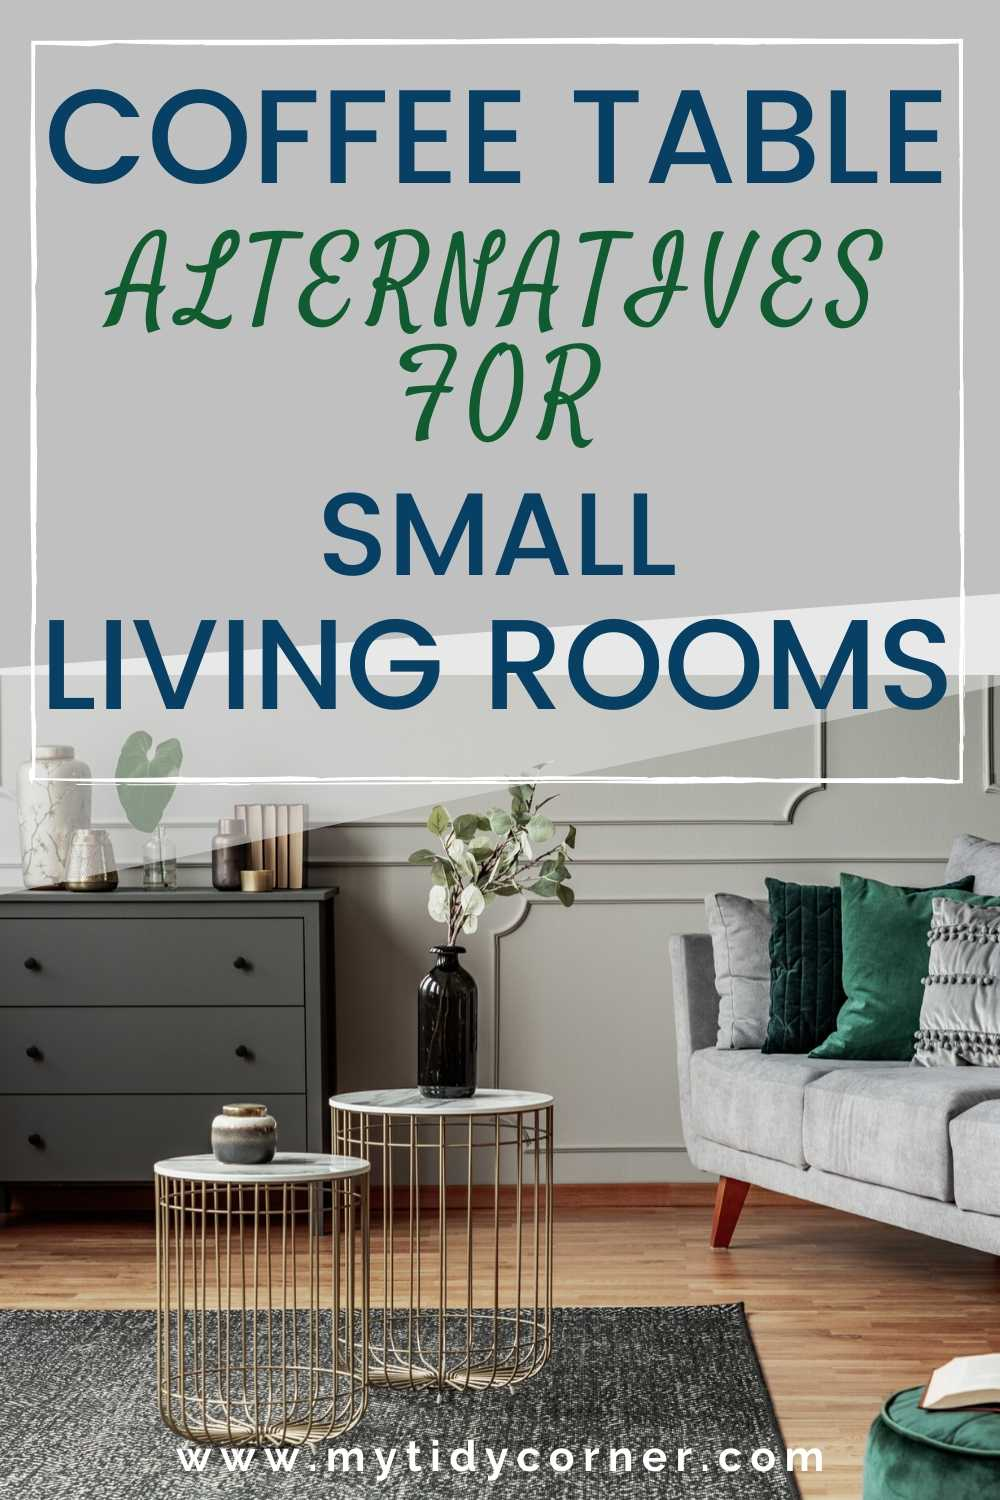 Coffee table alternatives for small living rooms